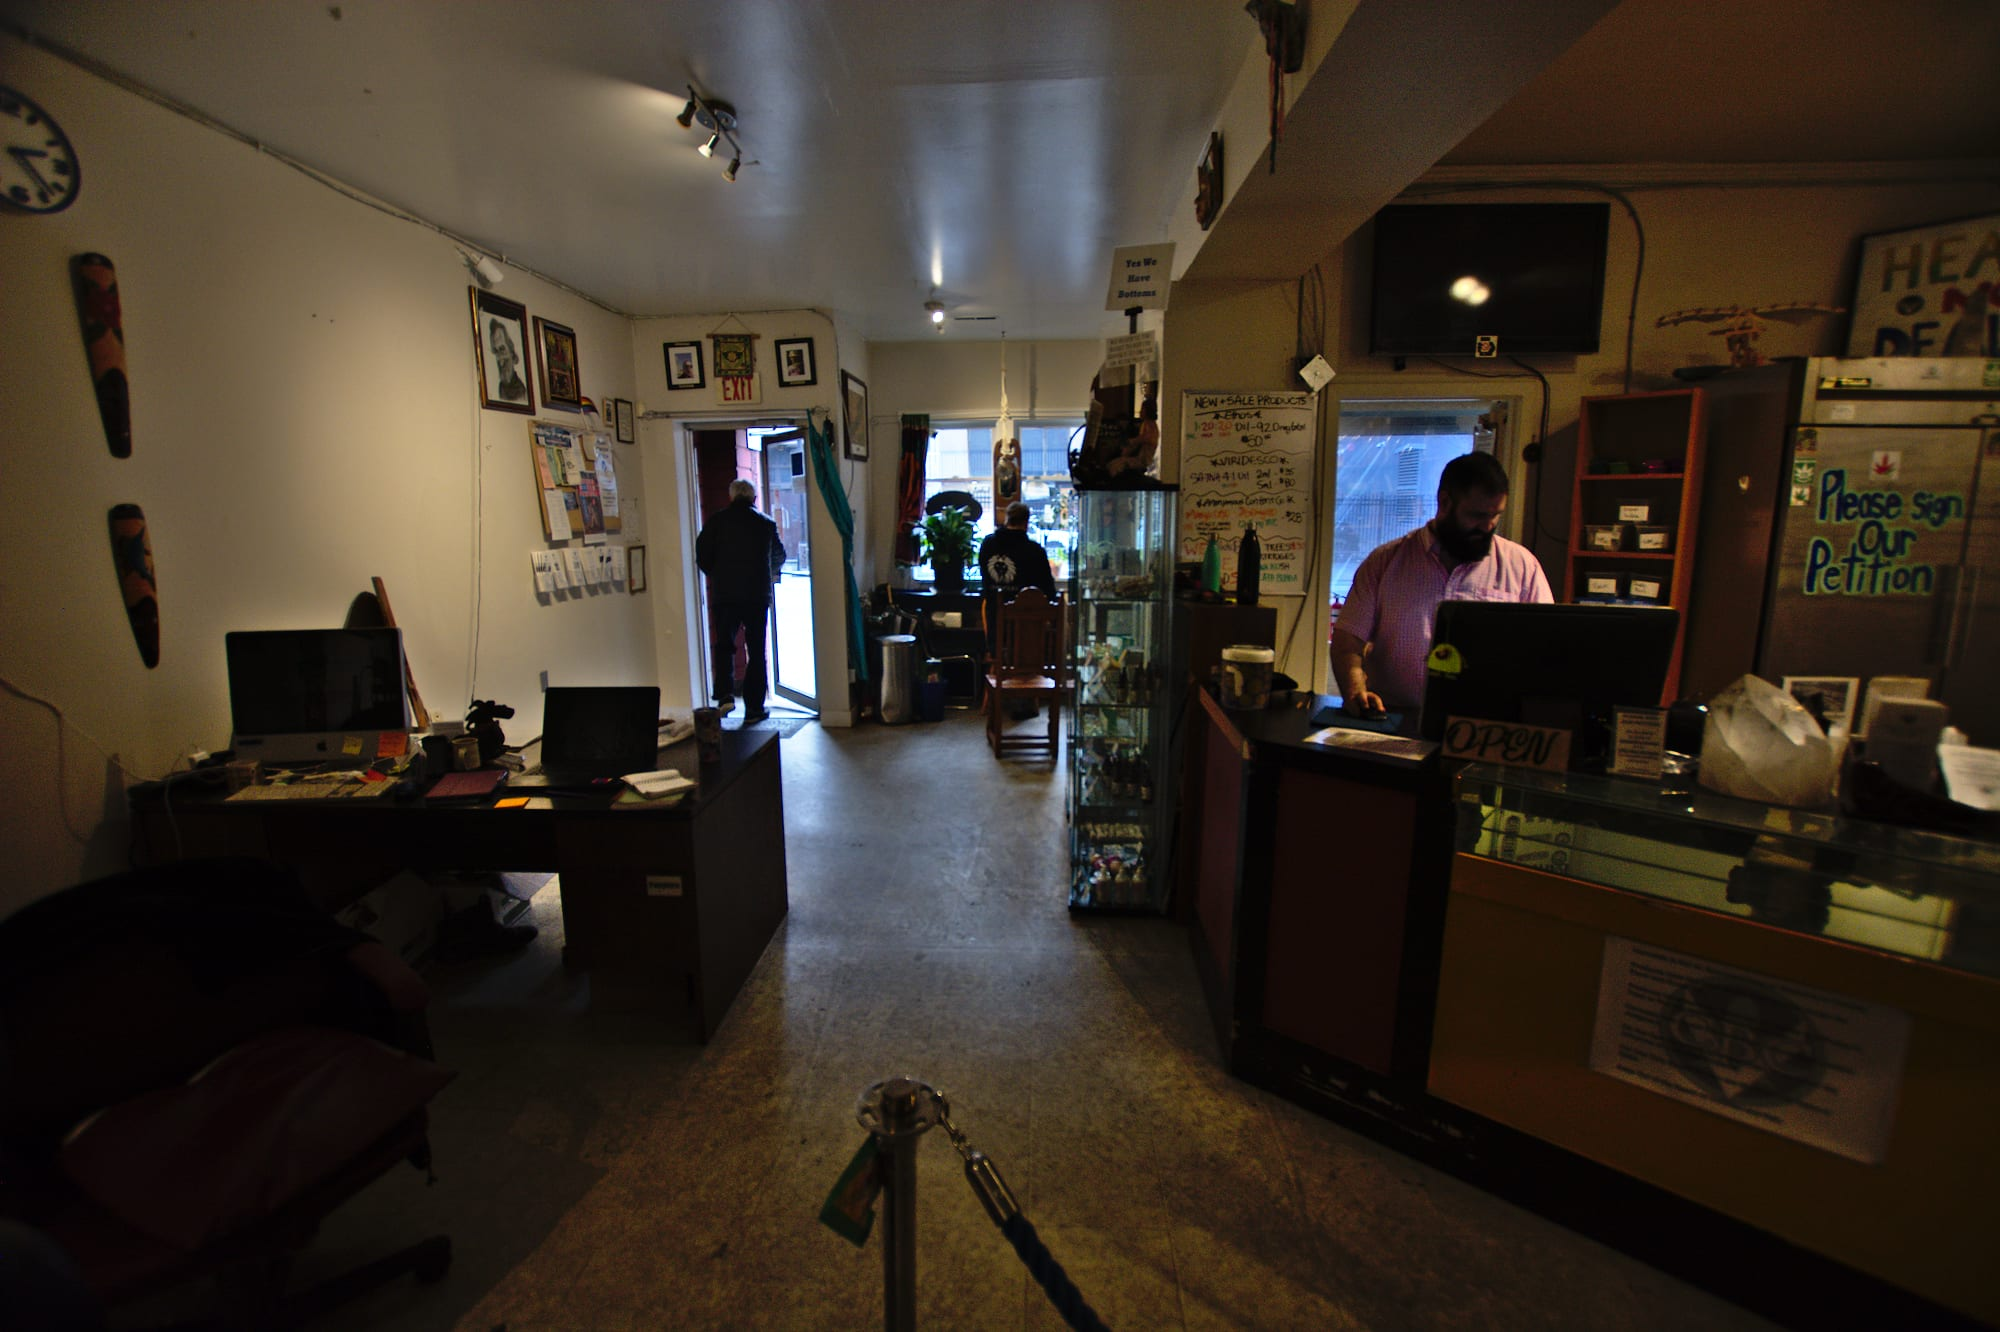 BC's weed business guide crentralizes key info but does little to dismantle barriers to entry